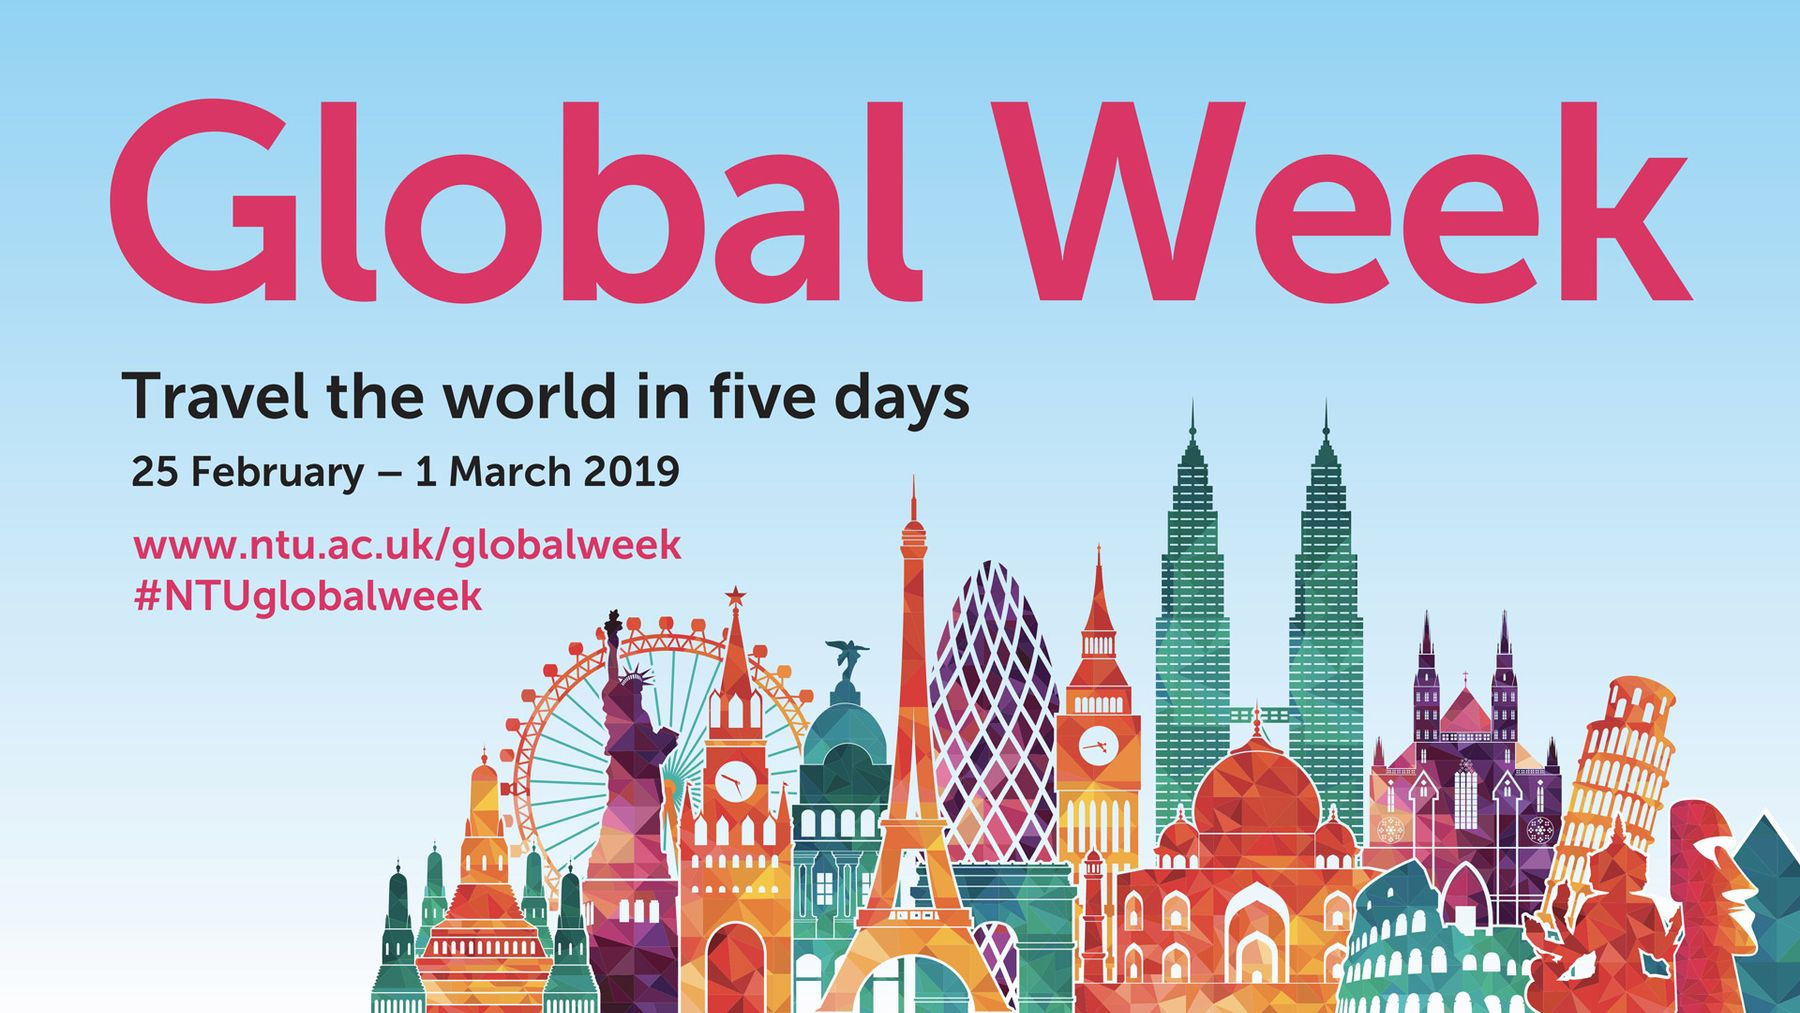 Global Week visual identity